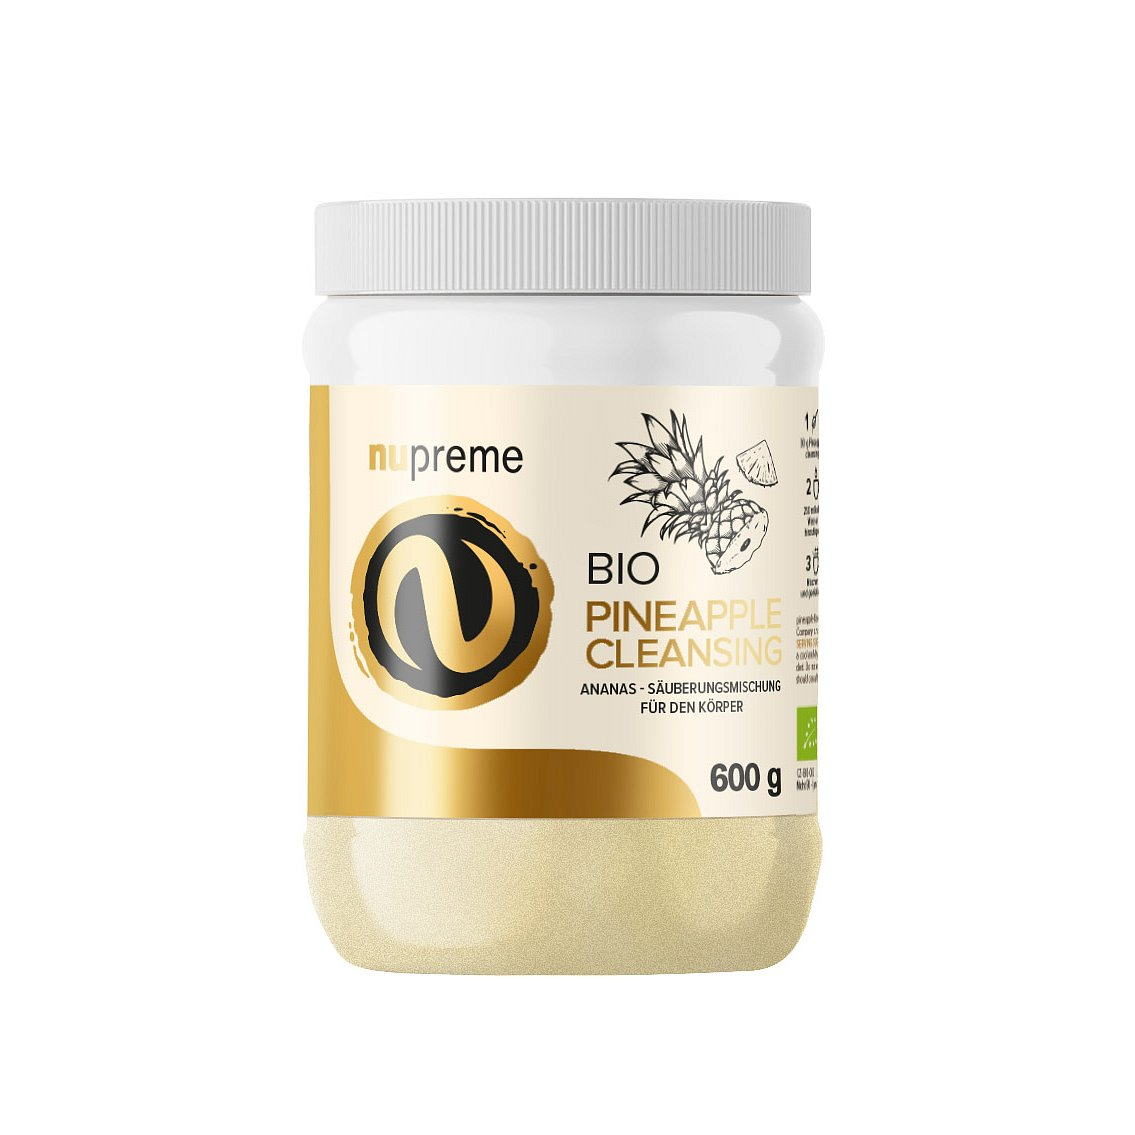 NUPREME BIO Pineapple Cleansing 600g